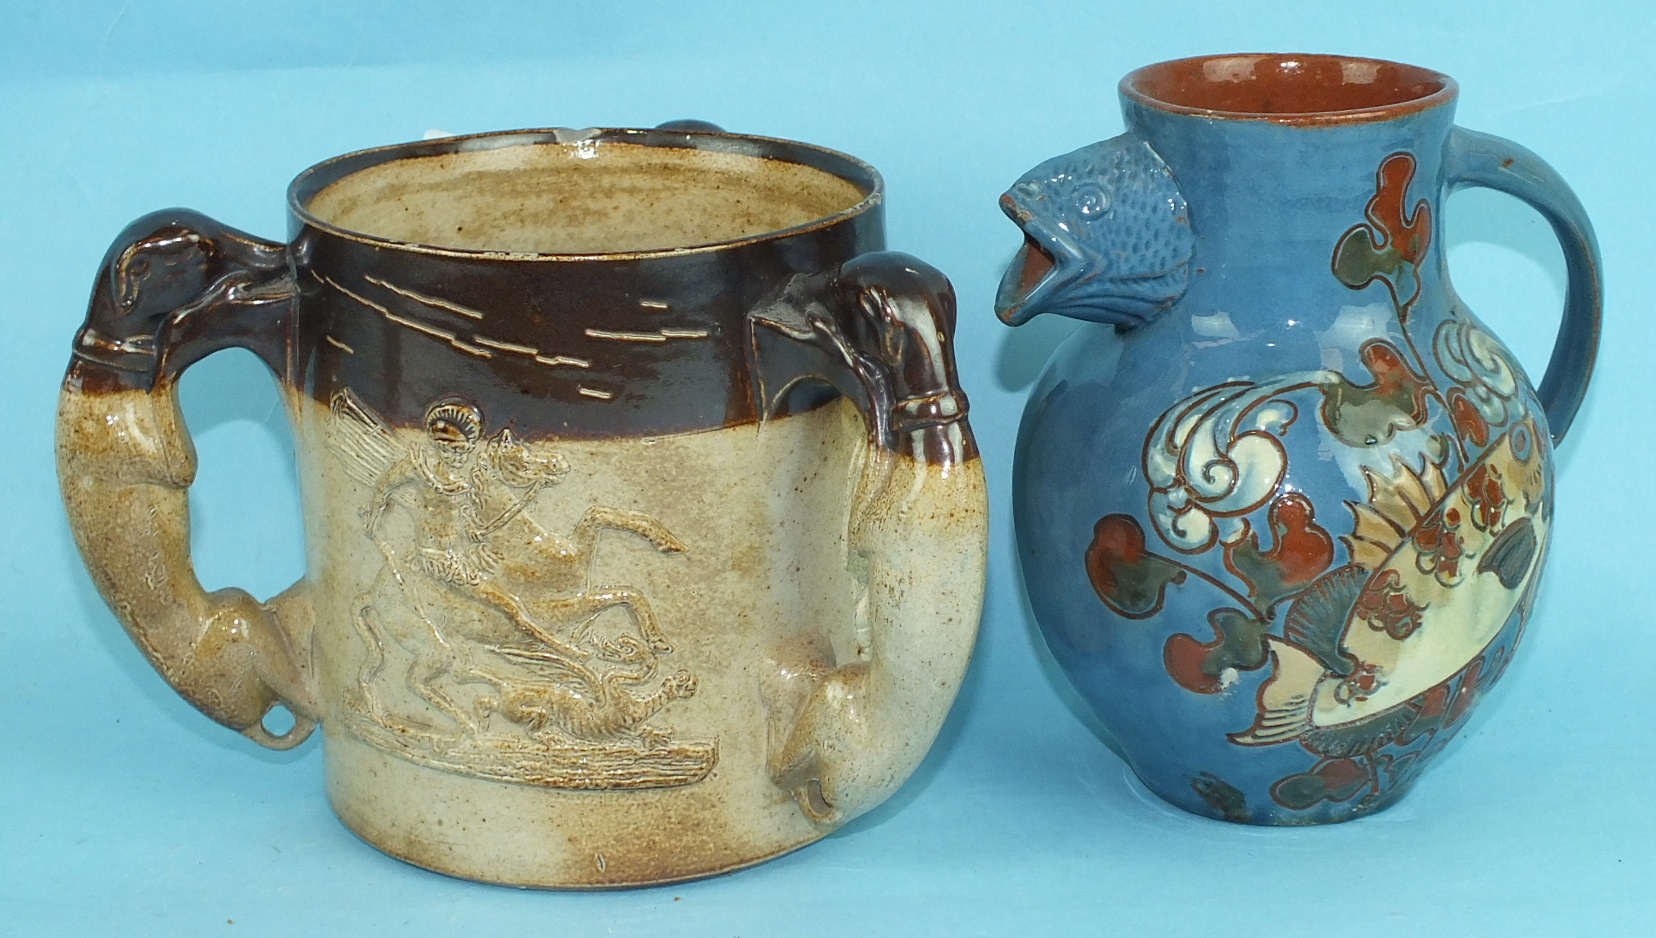 A Brannam Pottery slip-decorated fish jug and a 19th century stoneware tyg with St George & Dragon